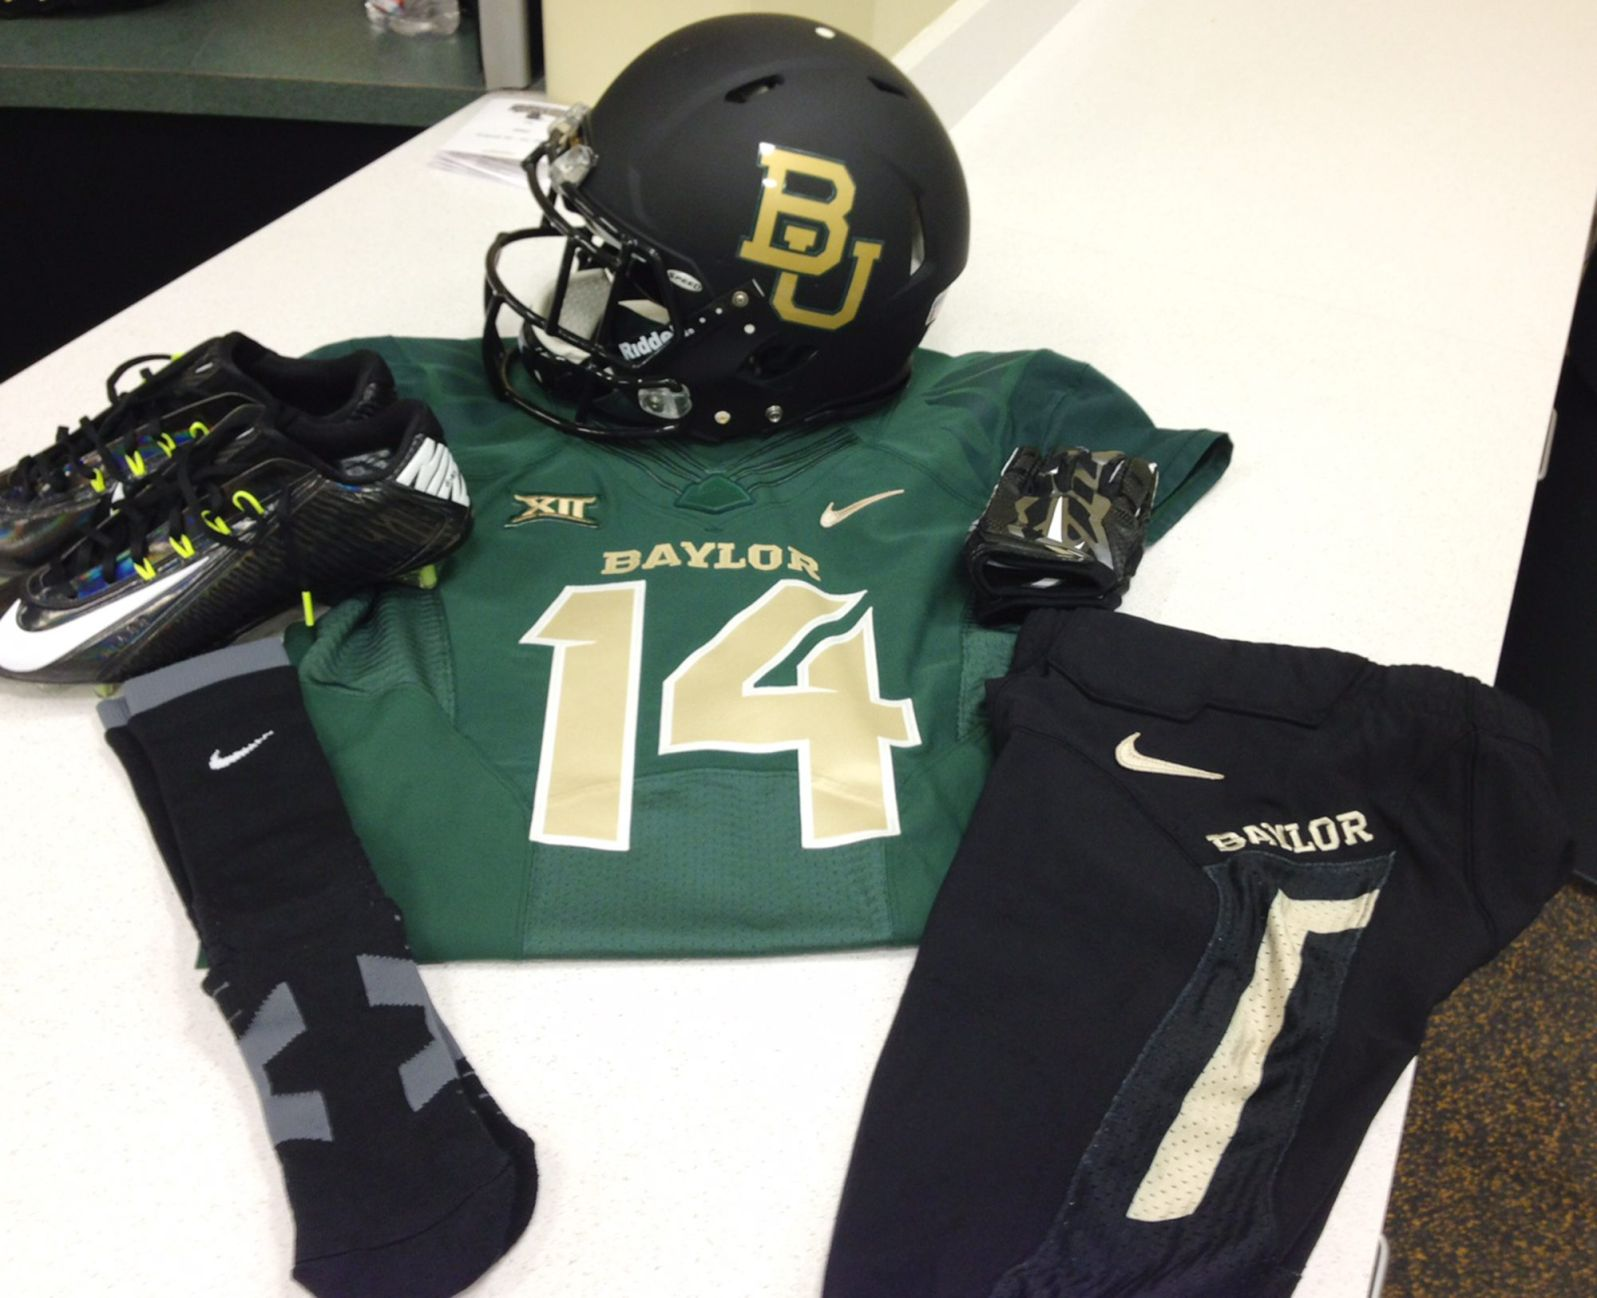 newest collection d85f9 8b35b Baylor's endless variety of uniforms has given football ...